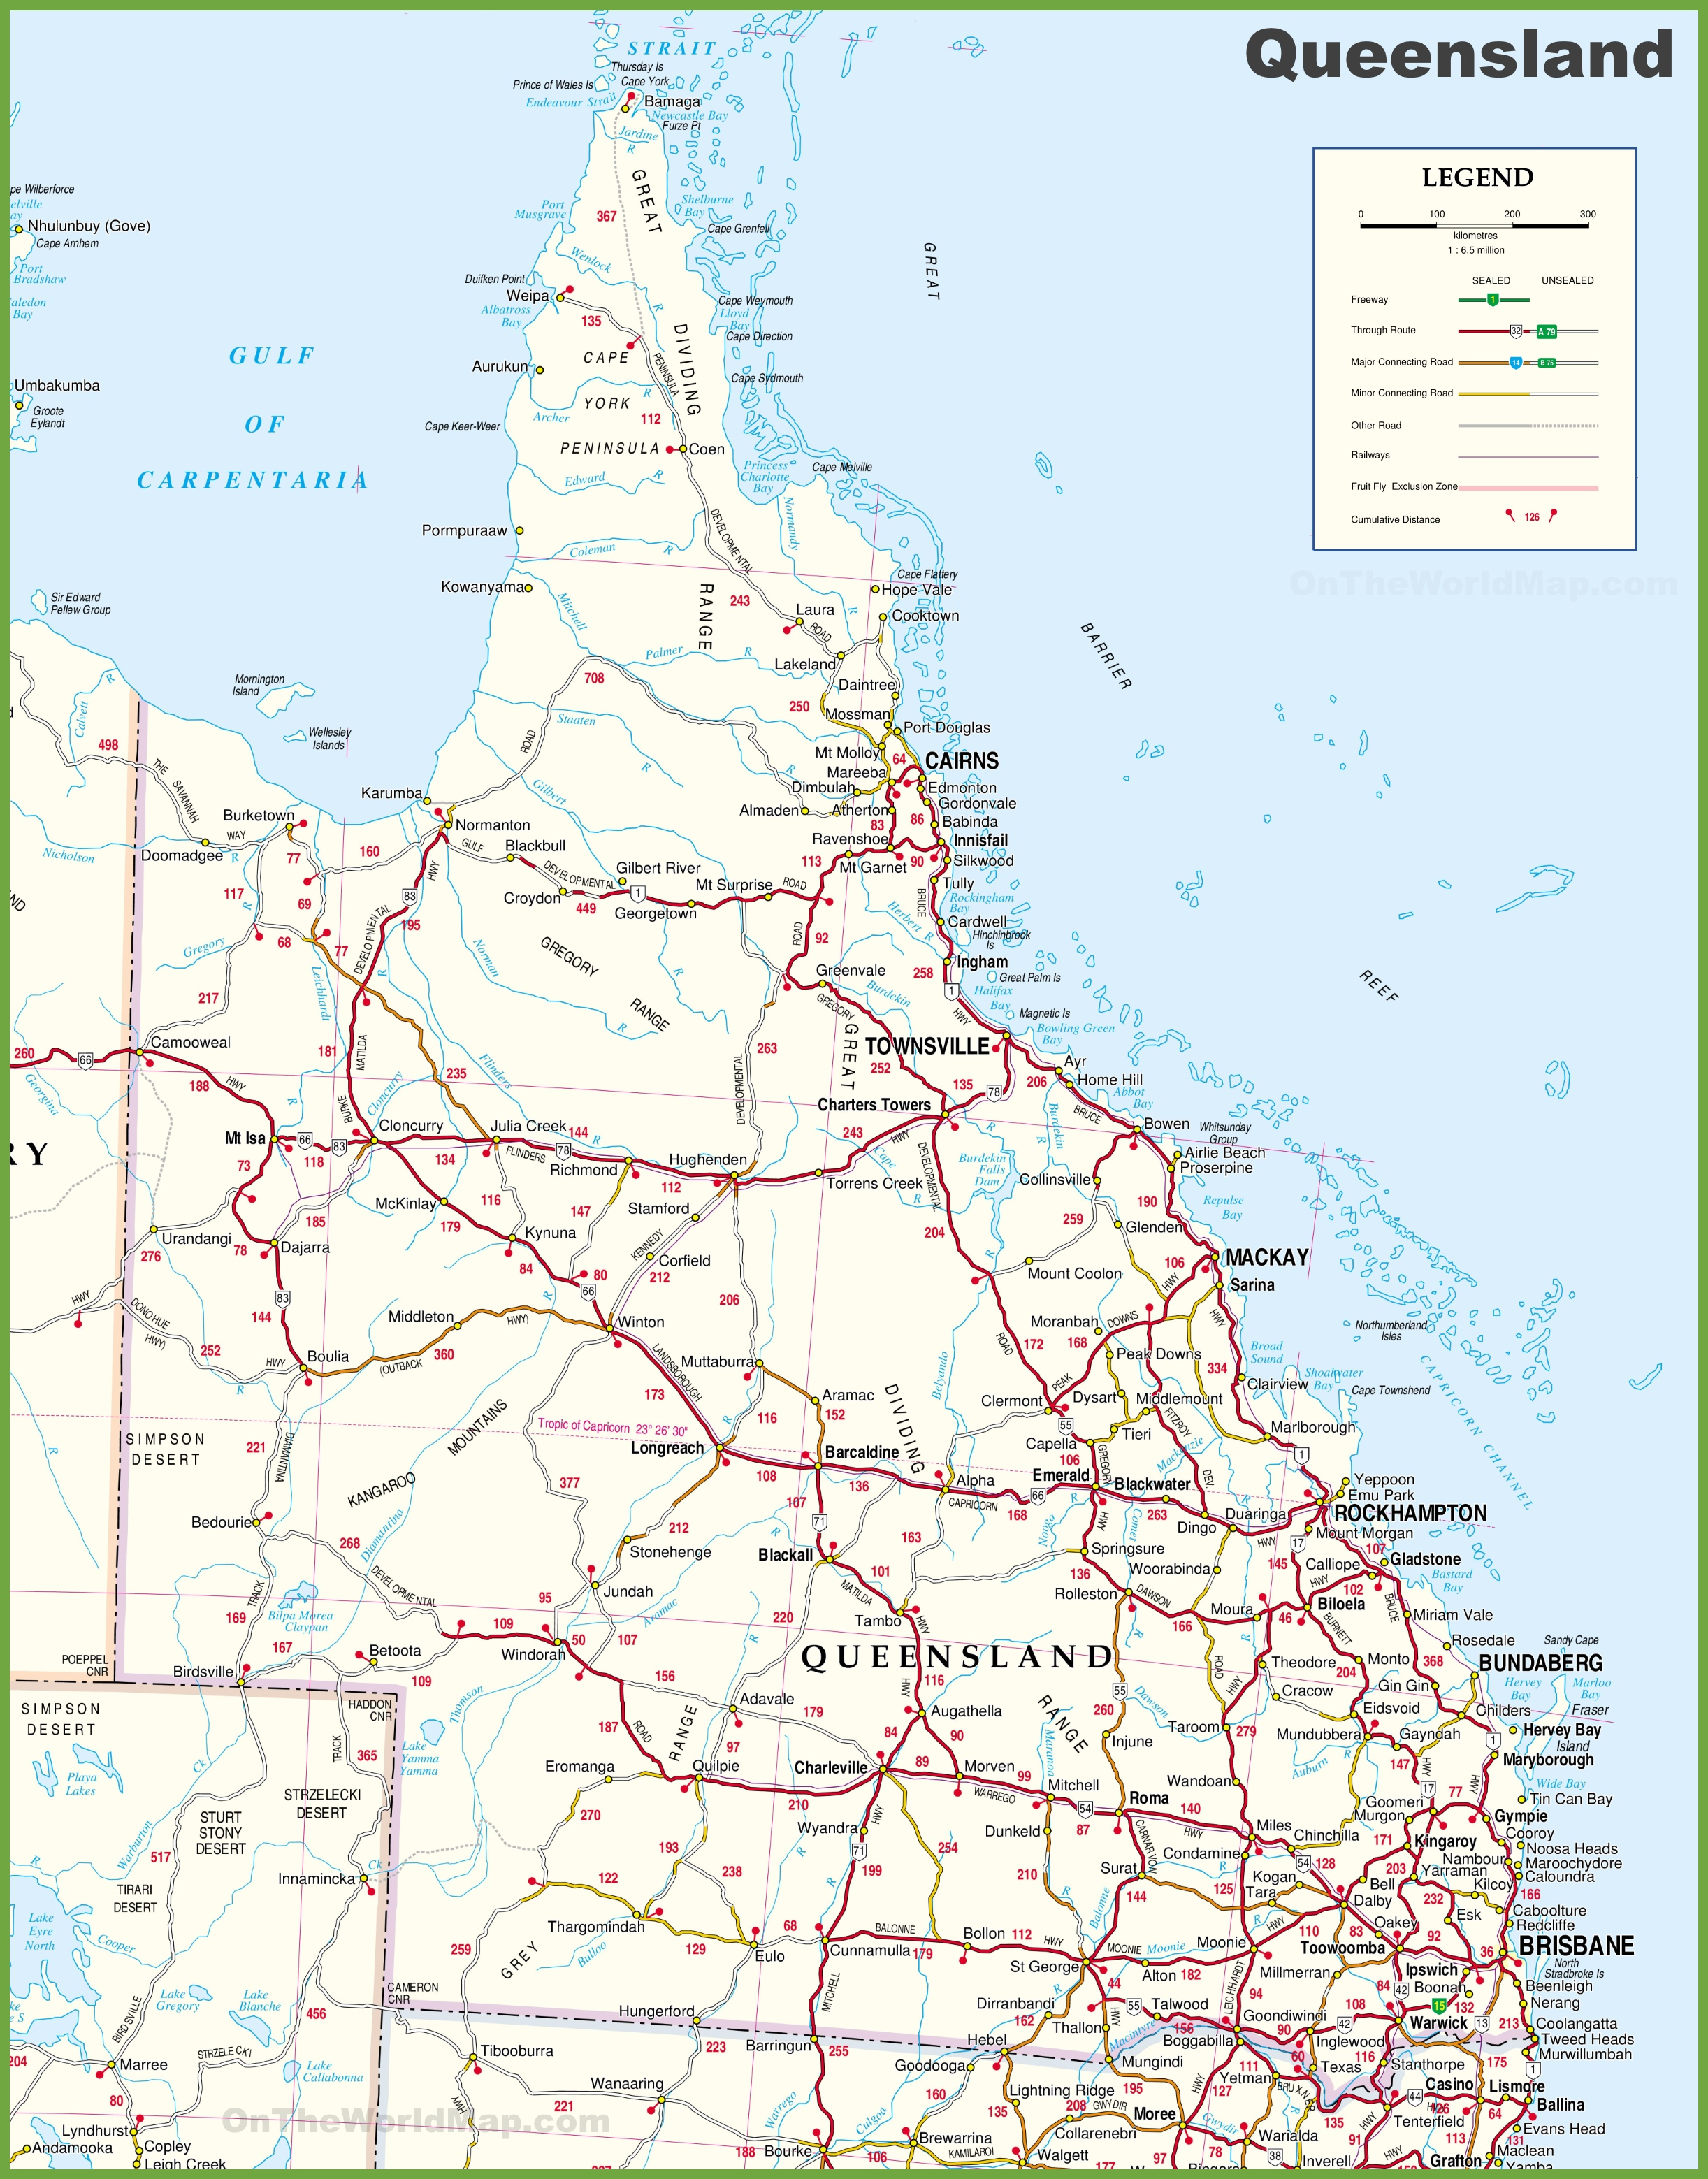 Large Detailed Map Of Queensland With Cities And Towns - Map australia queensland